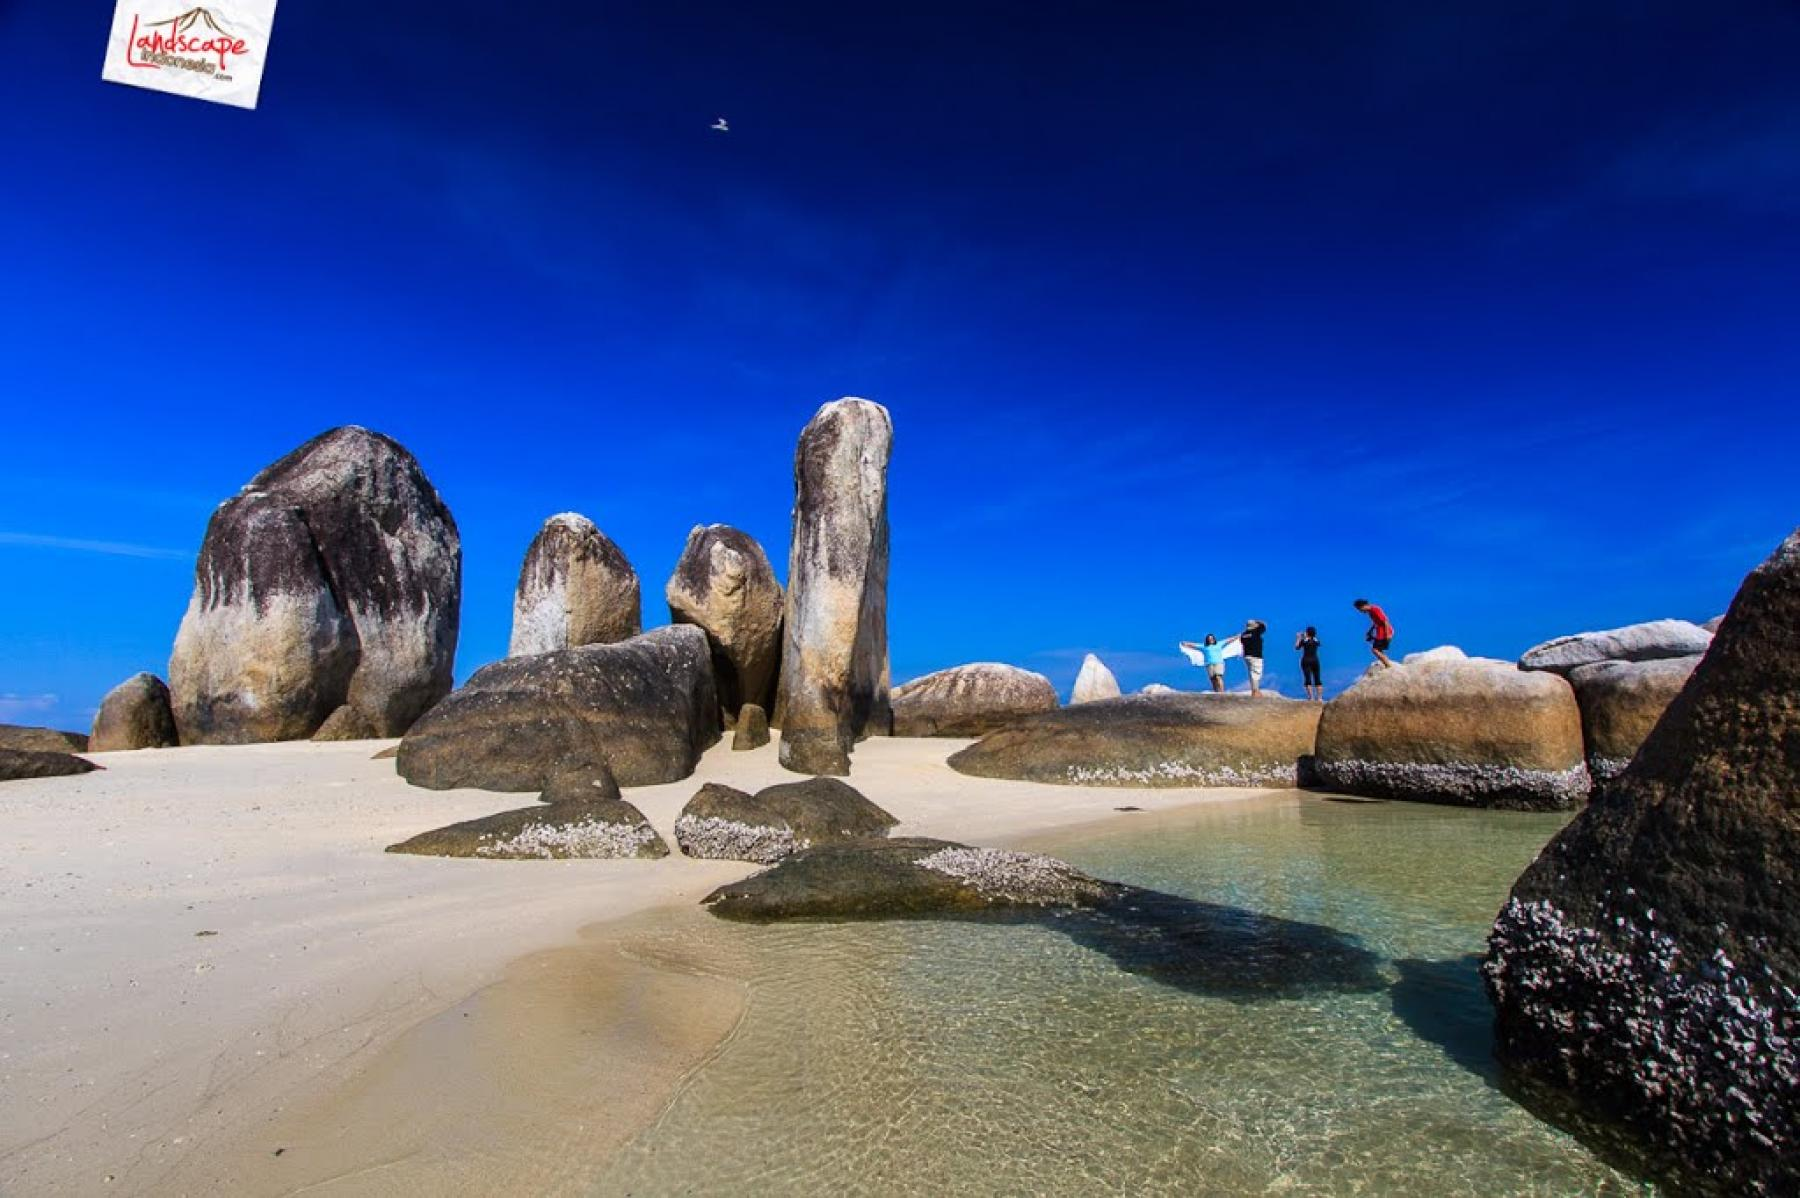 Let's experience a warm white Christmas starting at Belitung, Bangka Belitung Islands, Indonesia